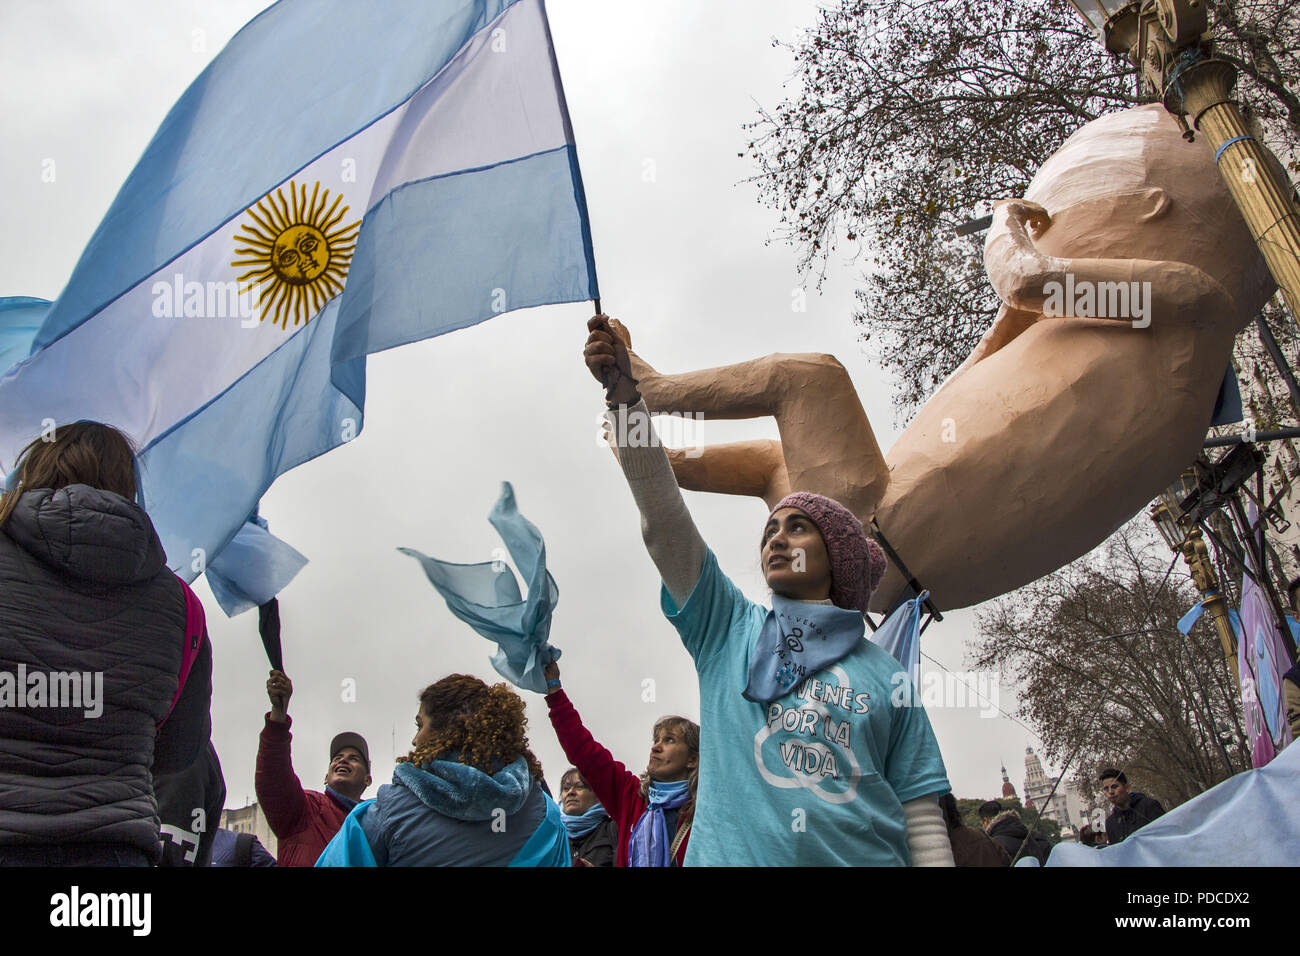 Buenos Aires, Federal Capital, Argentina. 8th Aug, 2018. Historical session in the Argentine Senate: While the law is being discussed in a historic day for all of Latin America, a crowd of people approached the doors of the Senate to accompany the decisive vote, for or against, on the Voluntary termination of pregnancy. Credit: Roberto Almeida Aveledo/ZUMA Wire/Alamy Live News - Stock Image